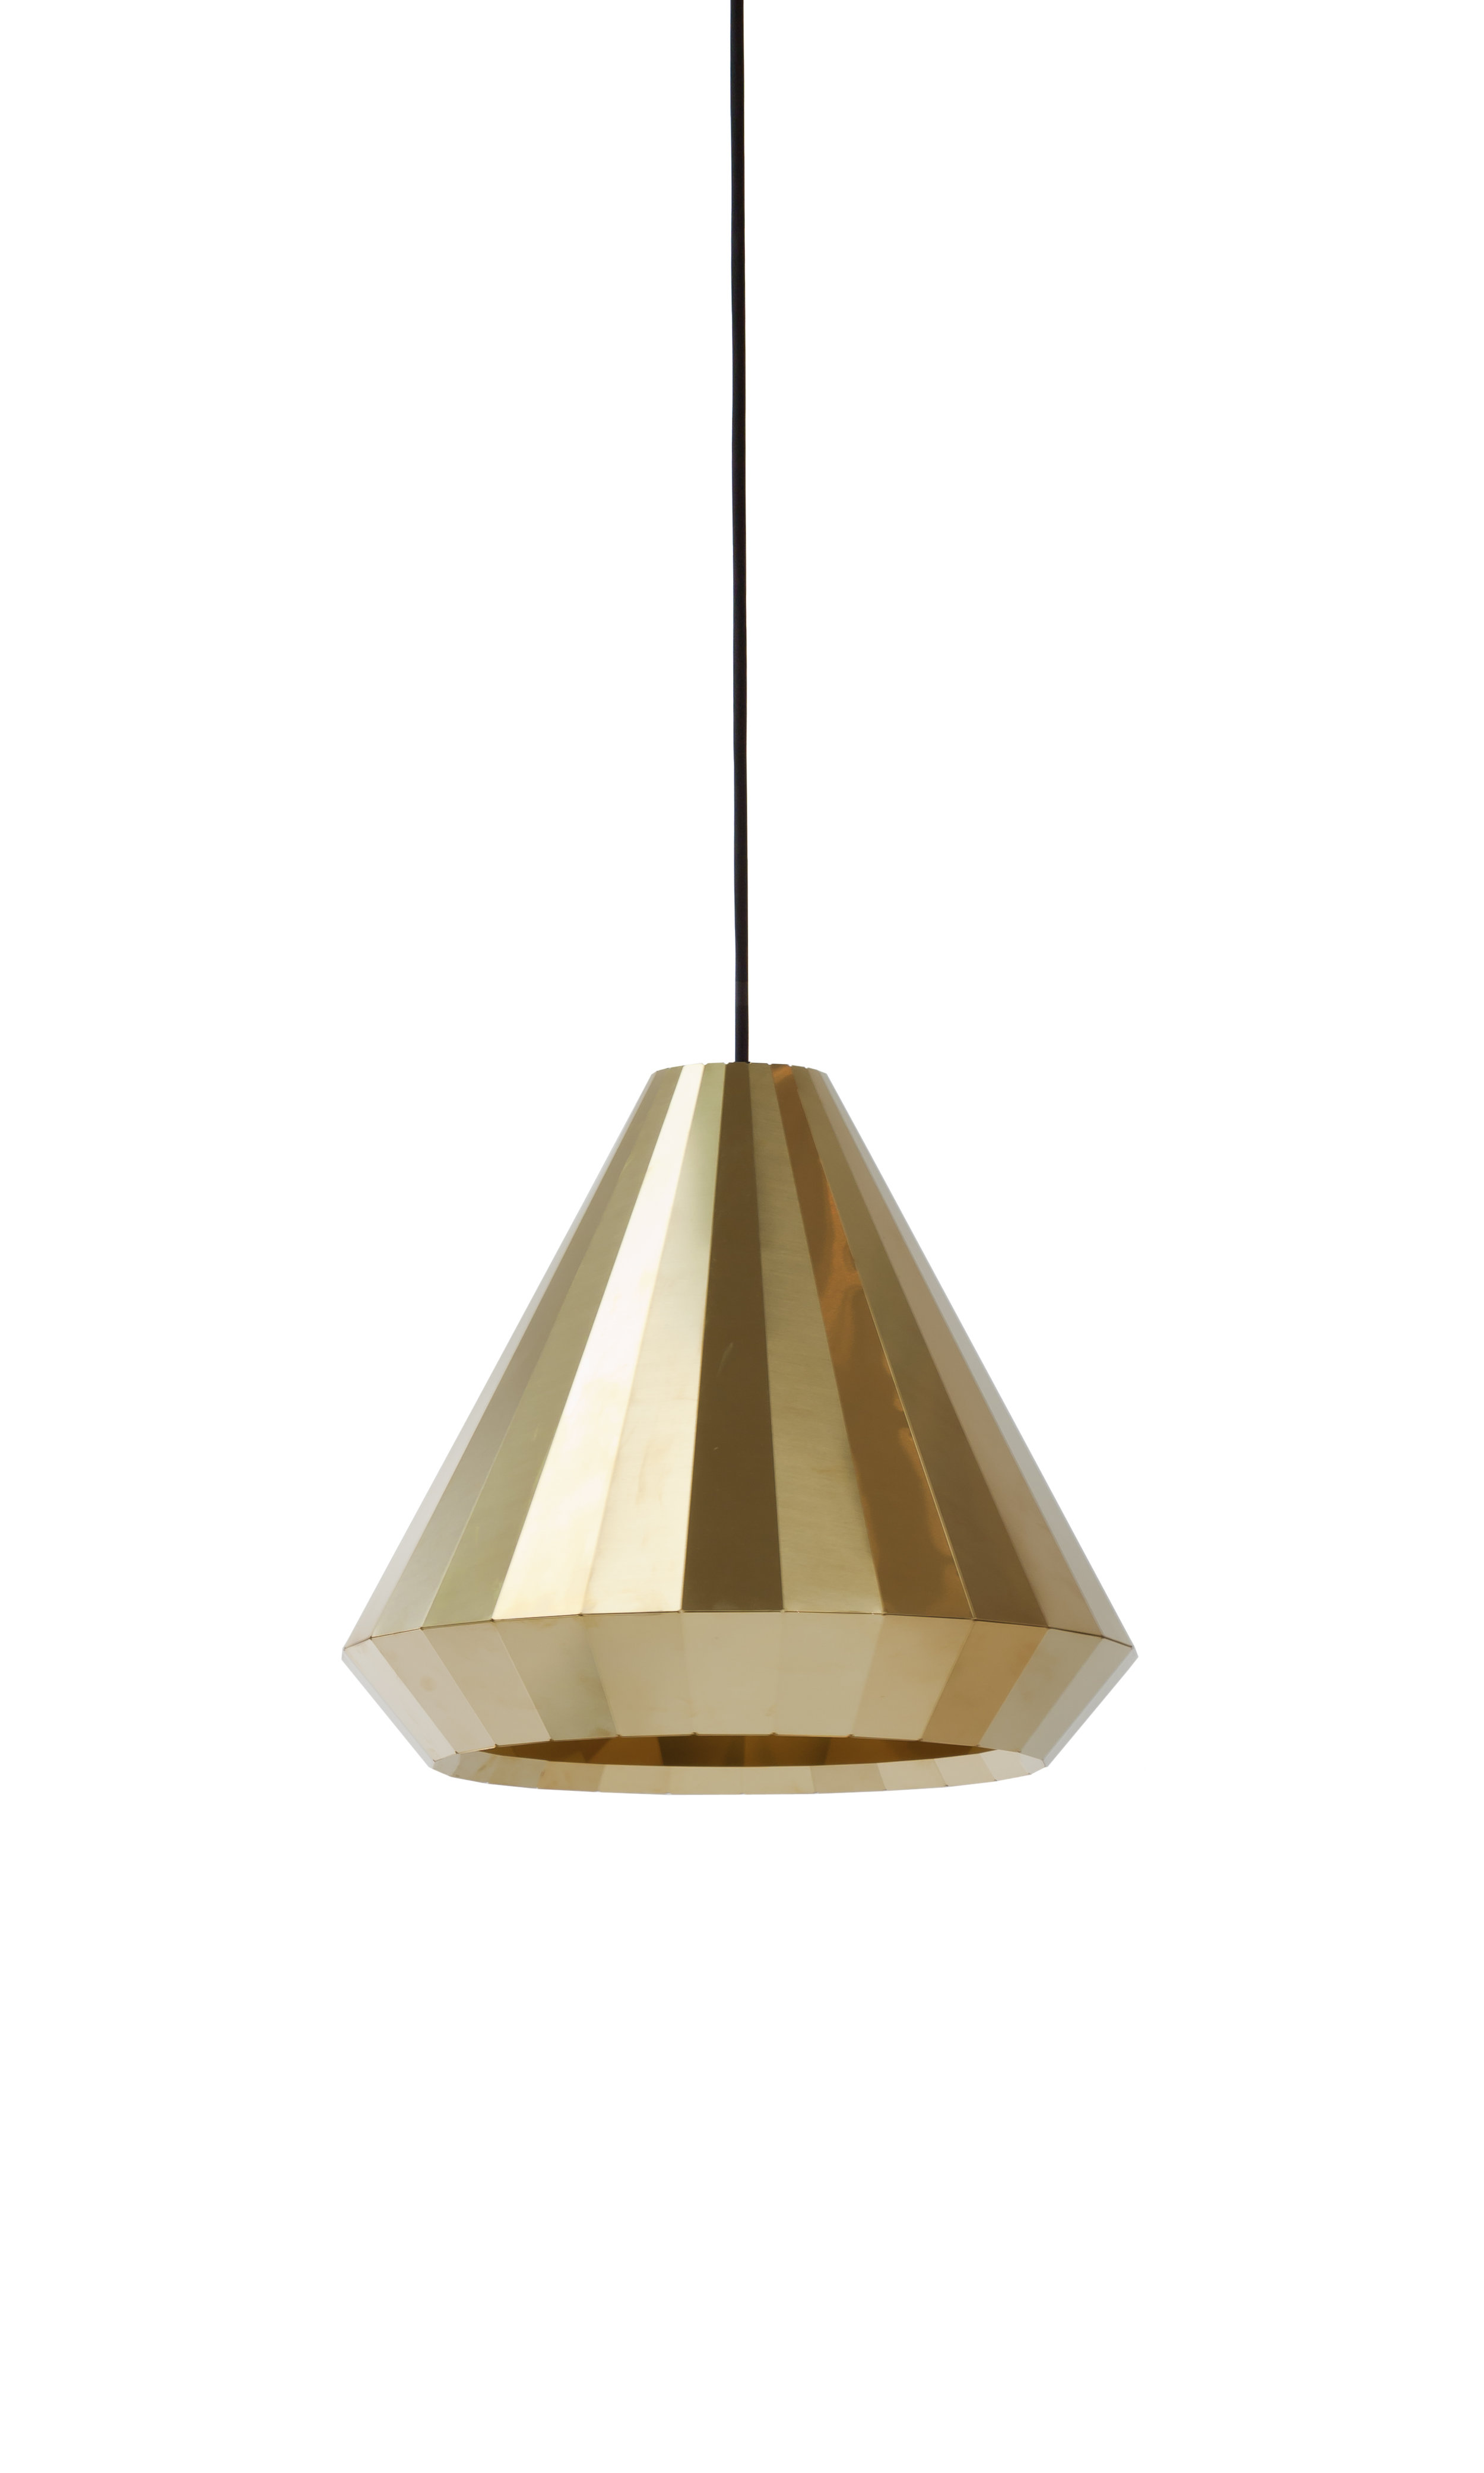 Vij5-Brass-Light-BL25-03-2014-image-by-Vij5.jpeg